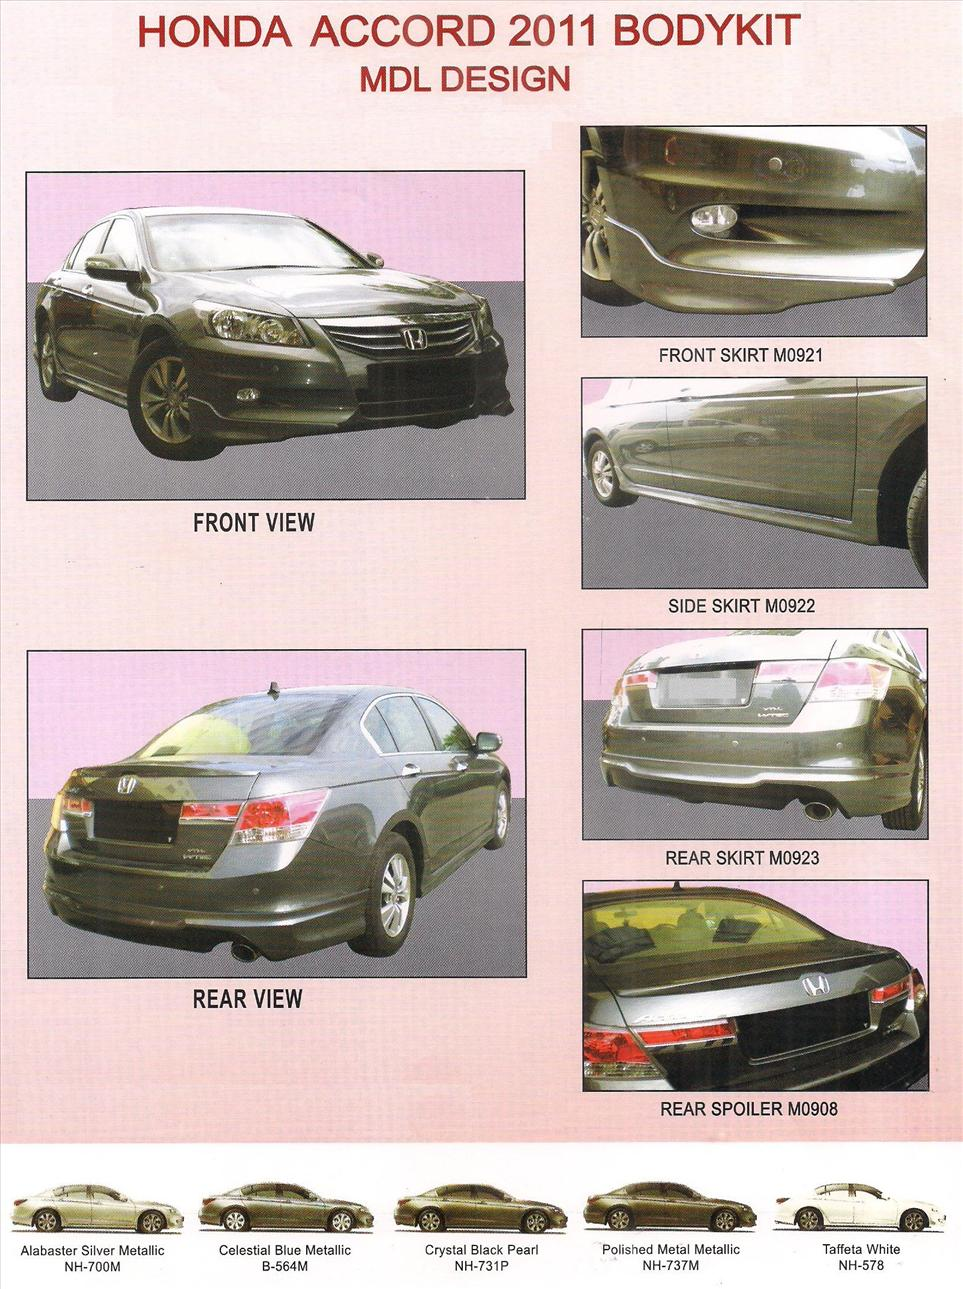 HONDA ACCORD 2011 MDL DESIGN FULL BODYKIT + PAINTING